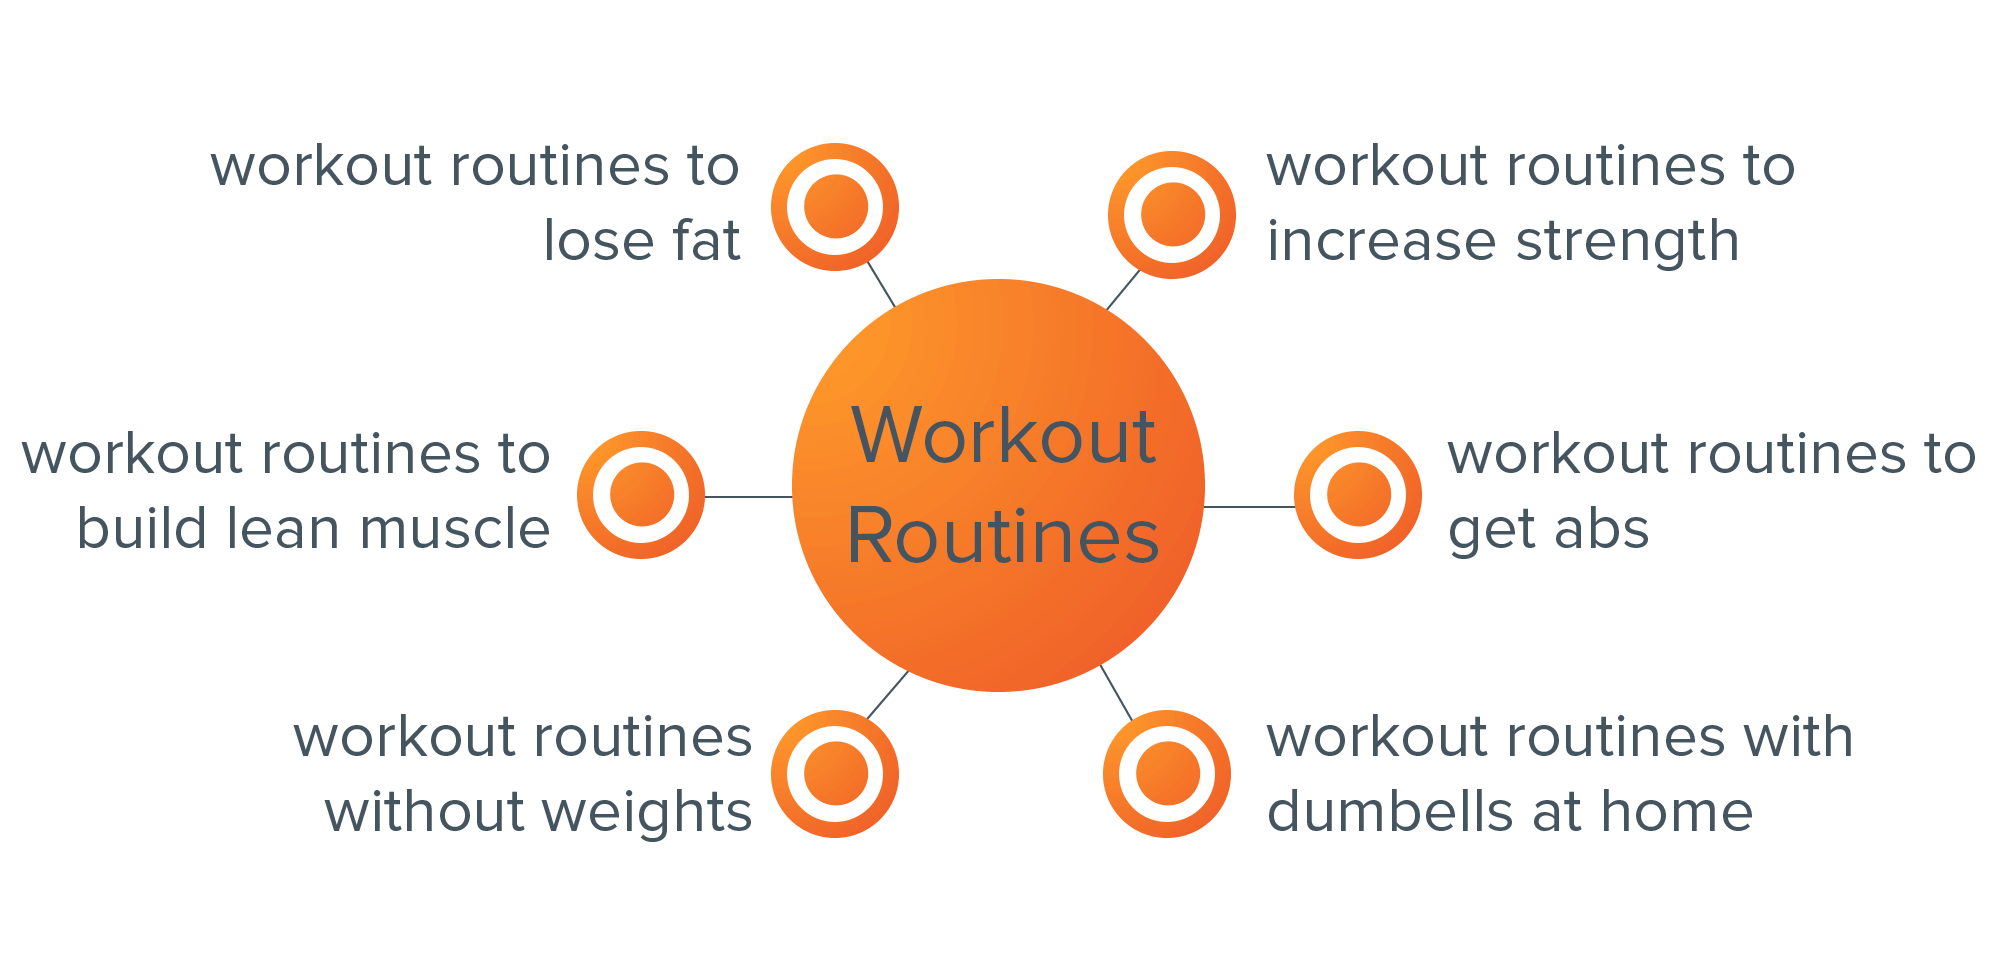 workout routines topic cluster.png